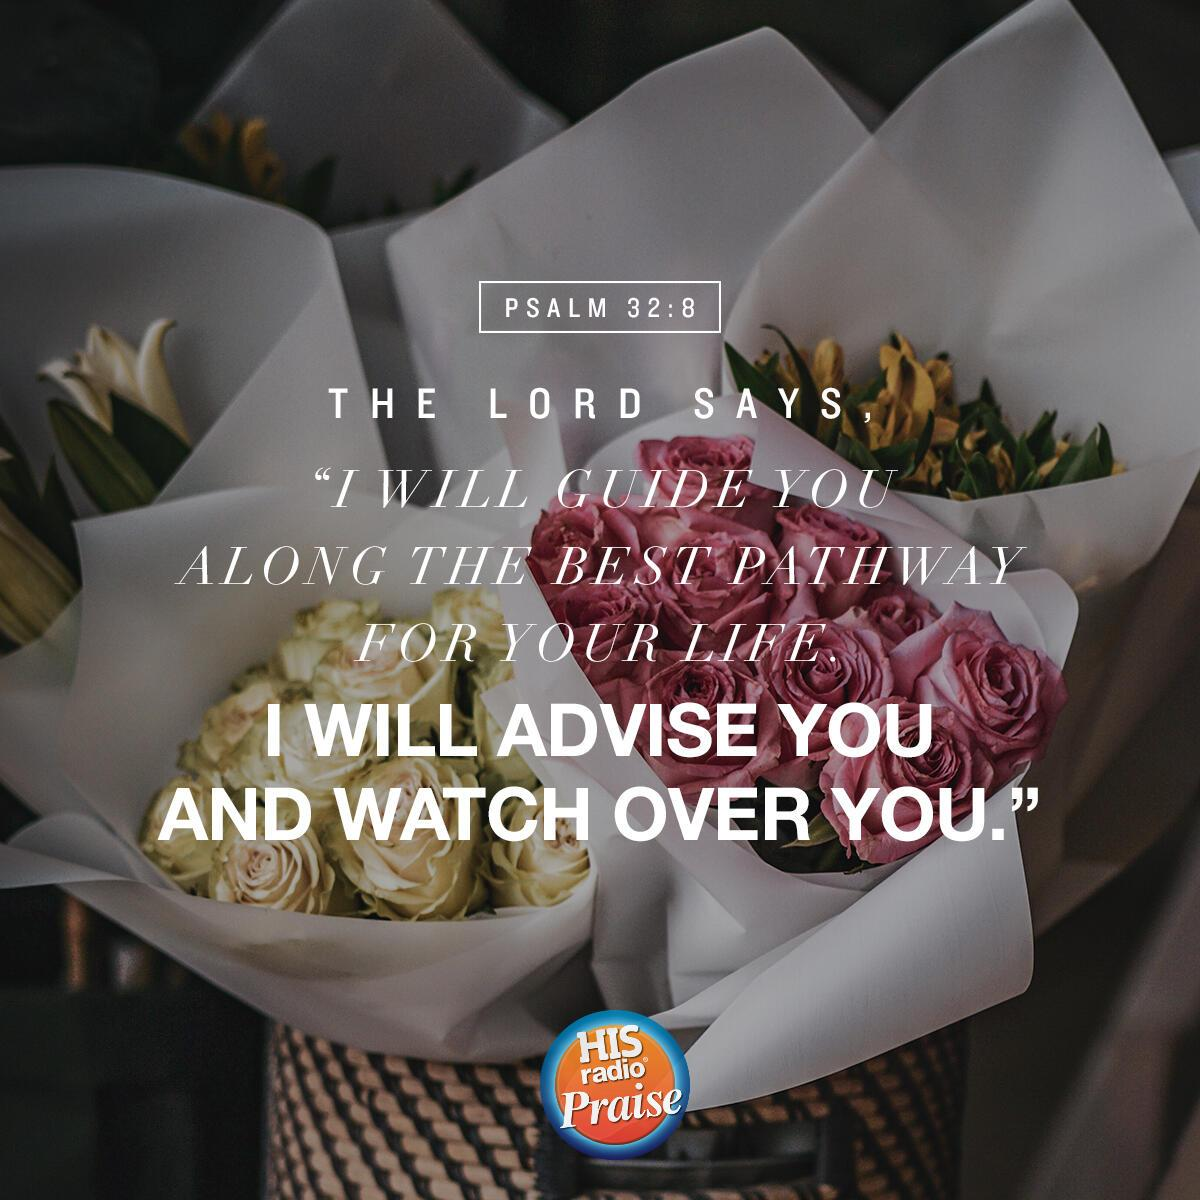 Psalm 32:8 - Verse of the Day